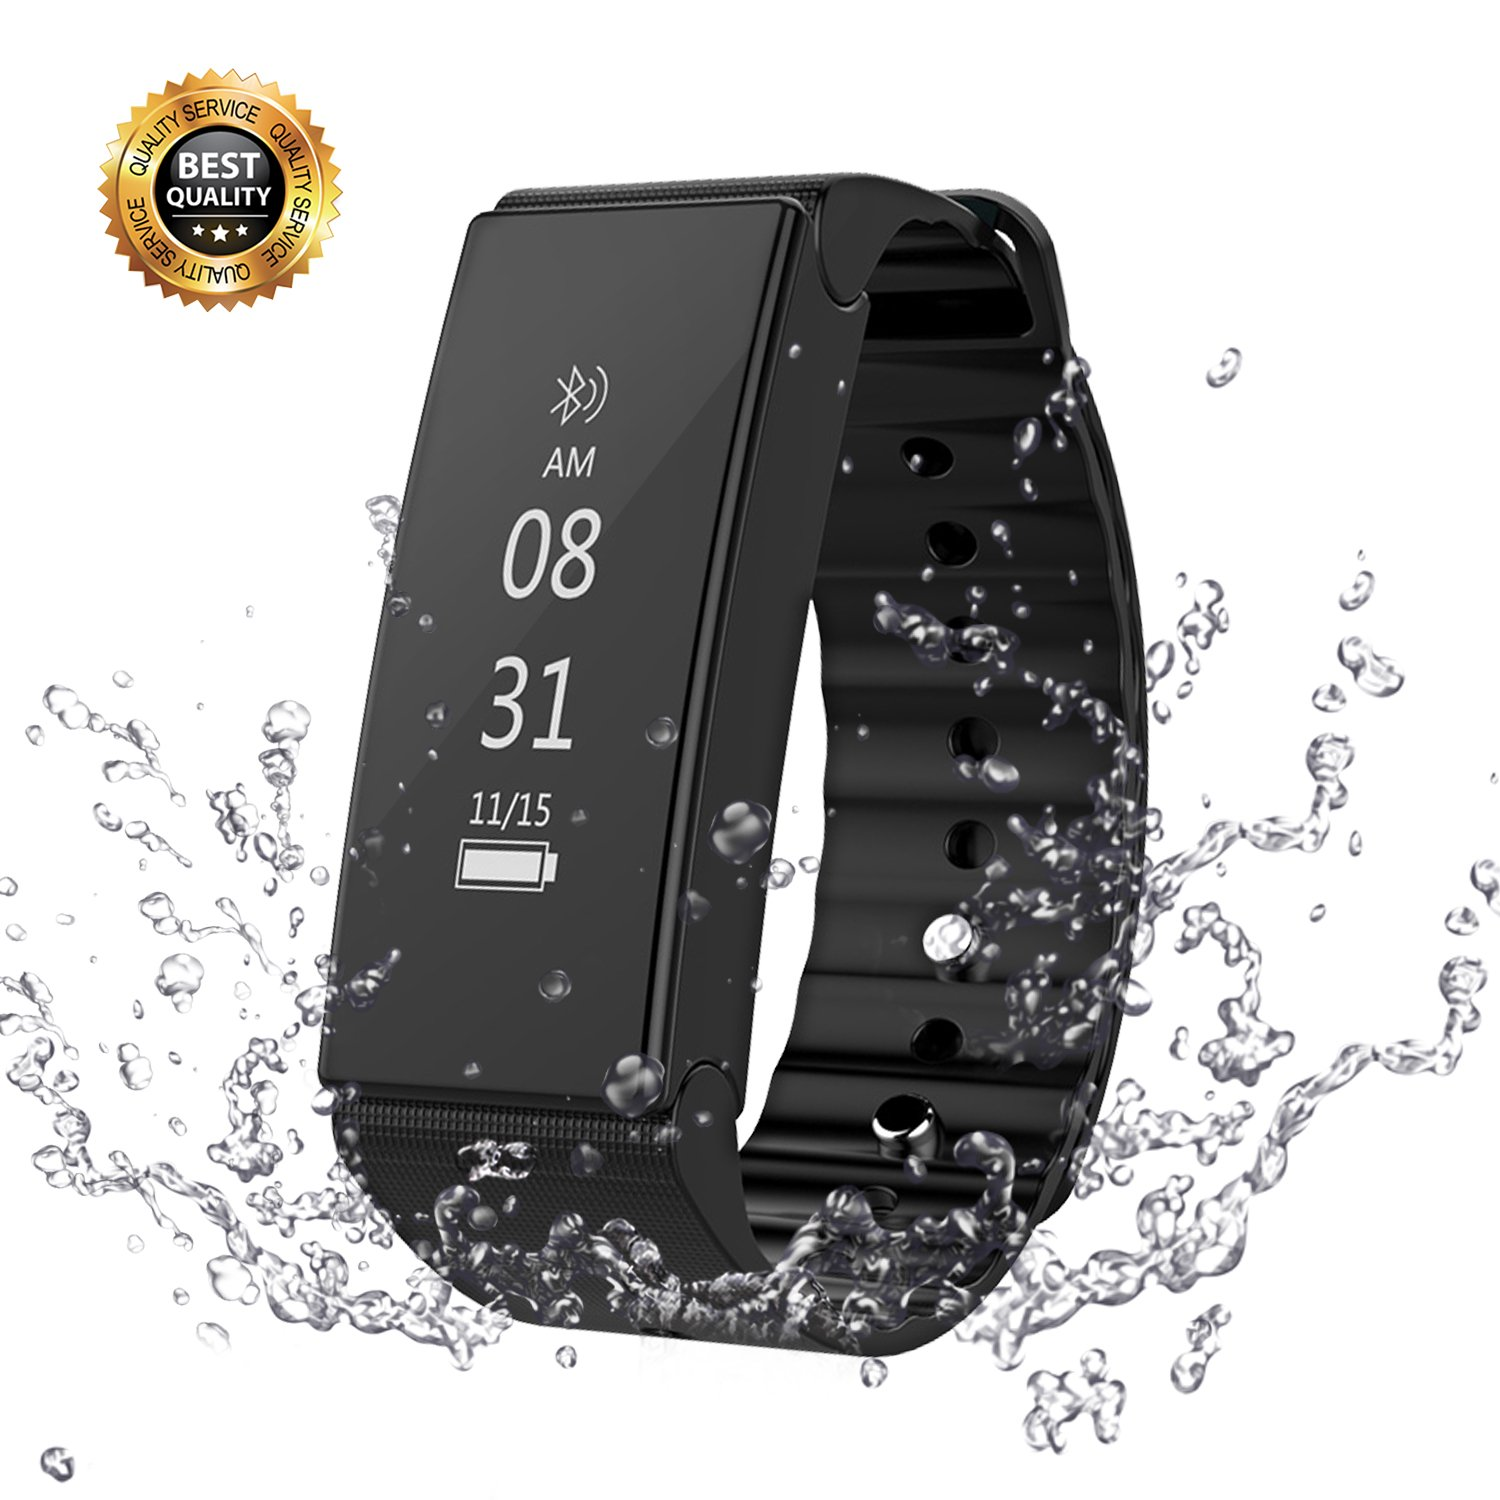 Vafru Fitness Tracker, Waterproof Activity Tracker with Smart Bluetooth Bracelet, Sleep Monitor Pedometer Wristband for iOS and Android (Black)